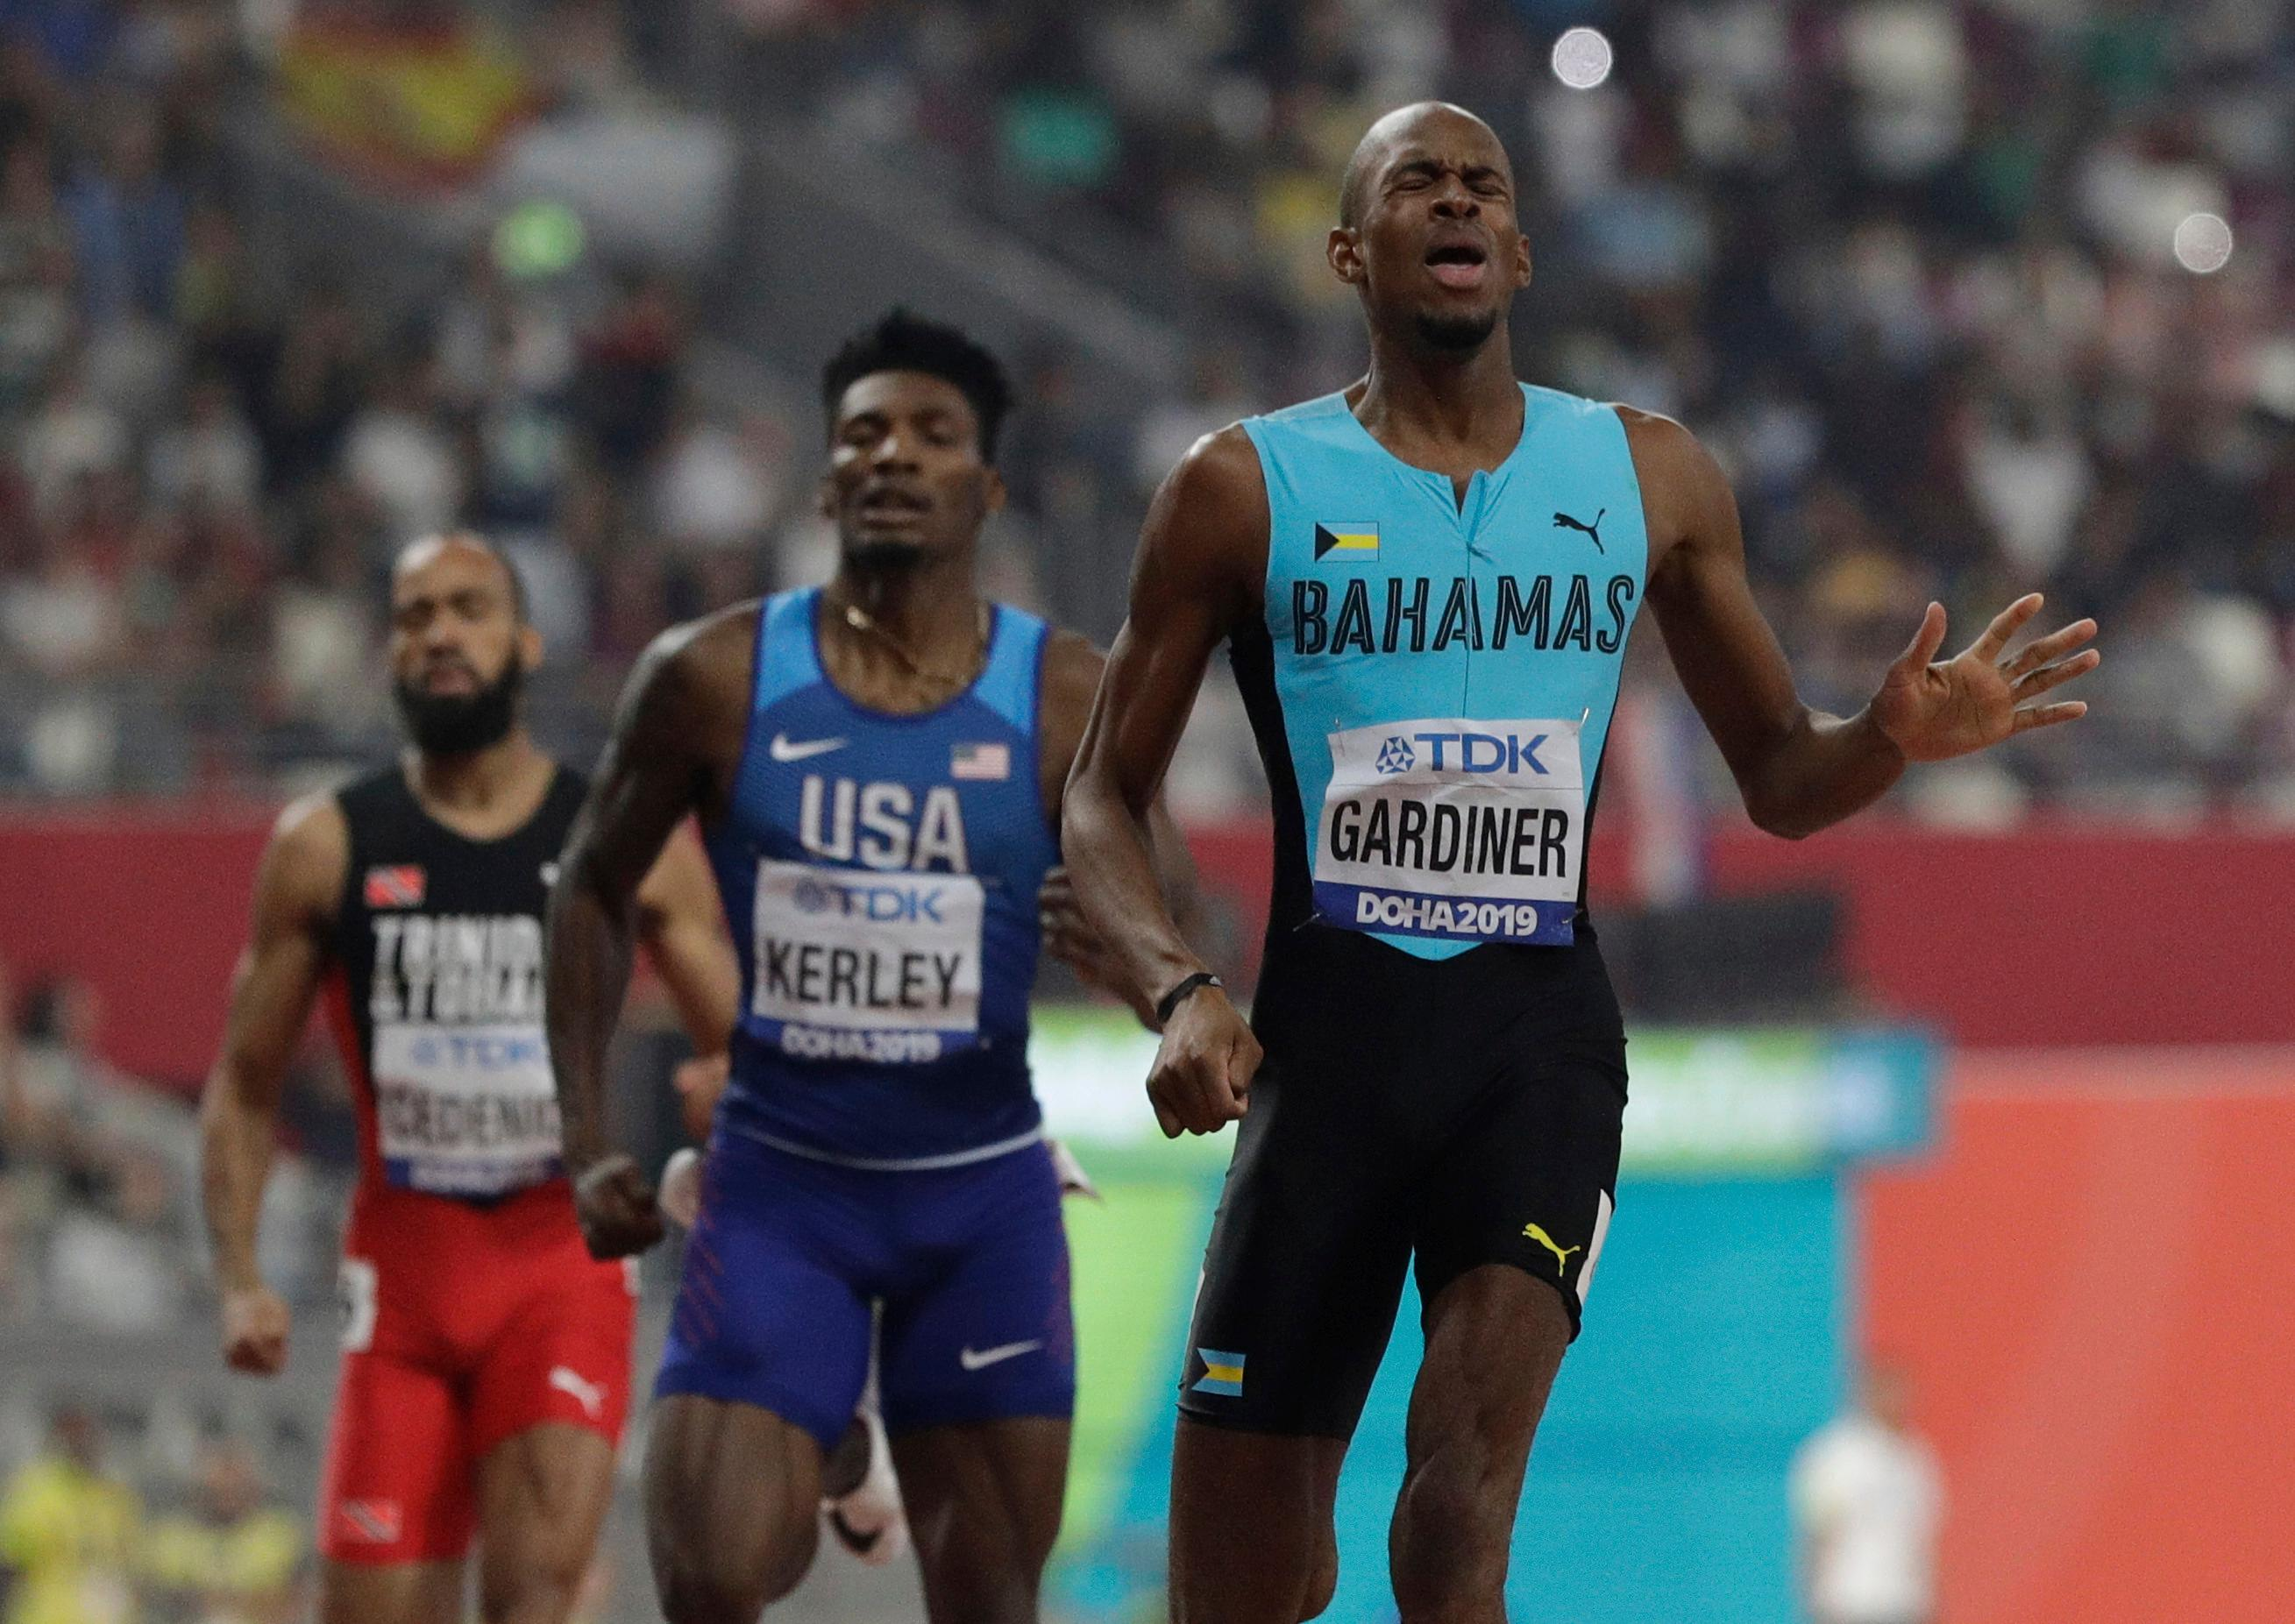 Steven Gardiner of Bahamas, right, wins the gold medal in the the men's 400 meter final at the World Athletics Championships in Doha, Qatar, Friday, Oct. 4, 2019. (AP Photo/Petr David Josek)